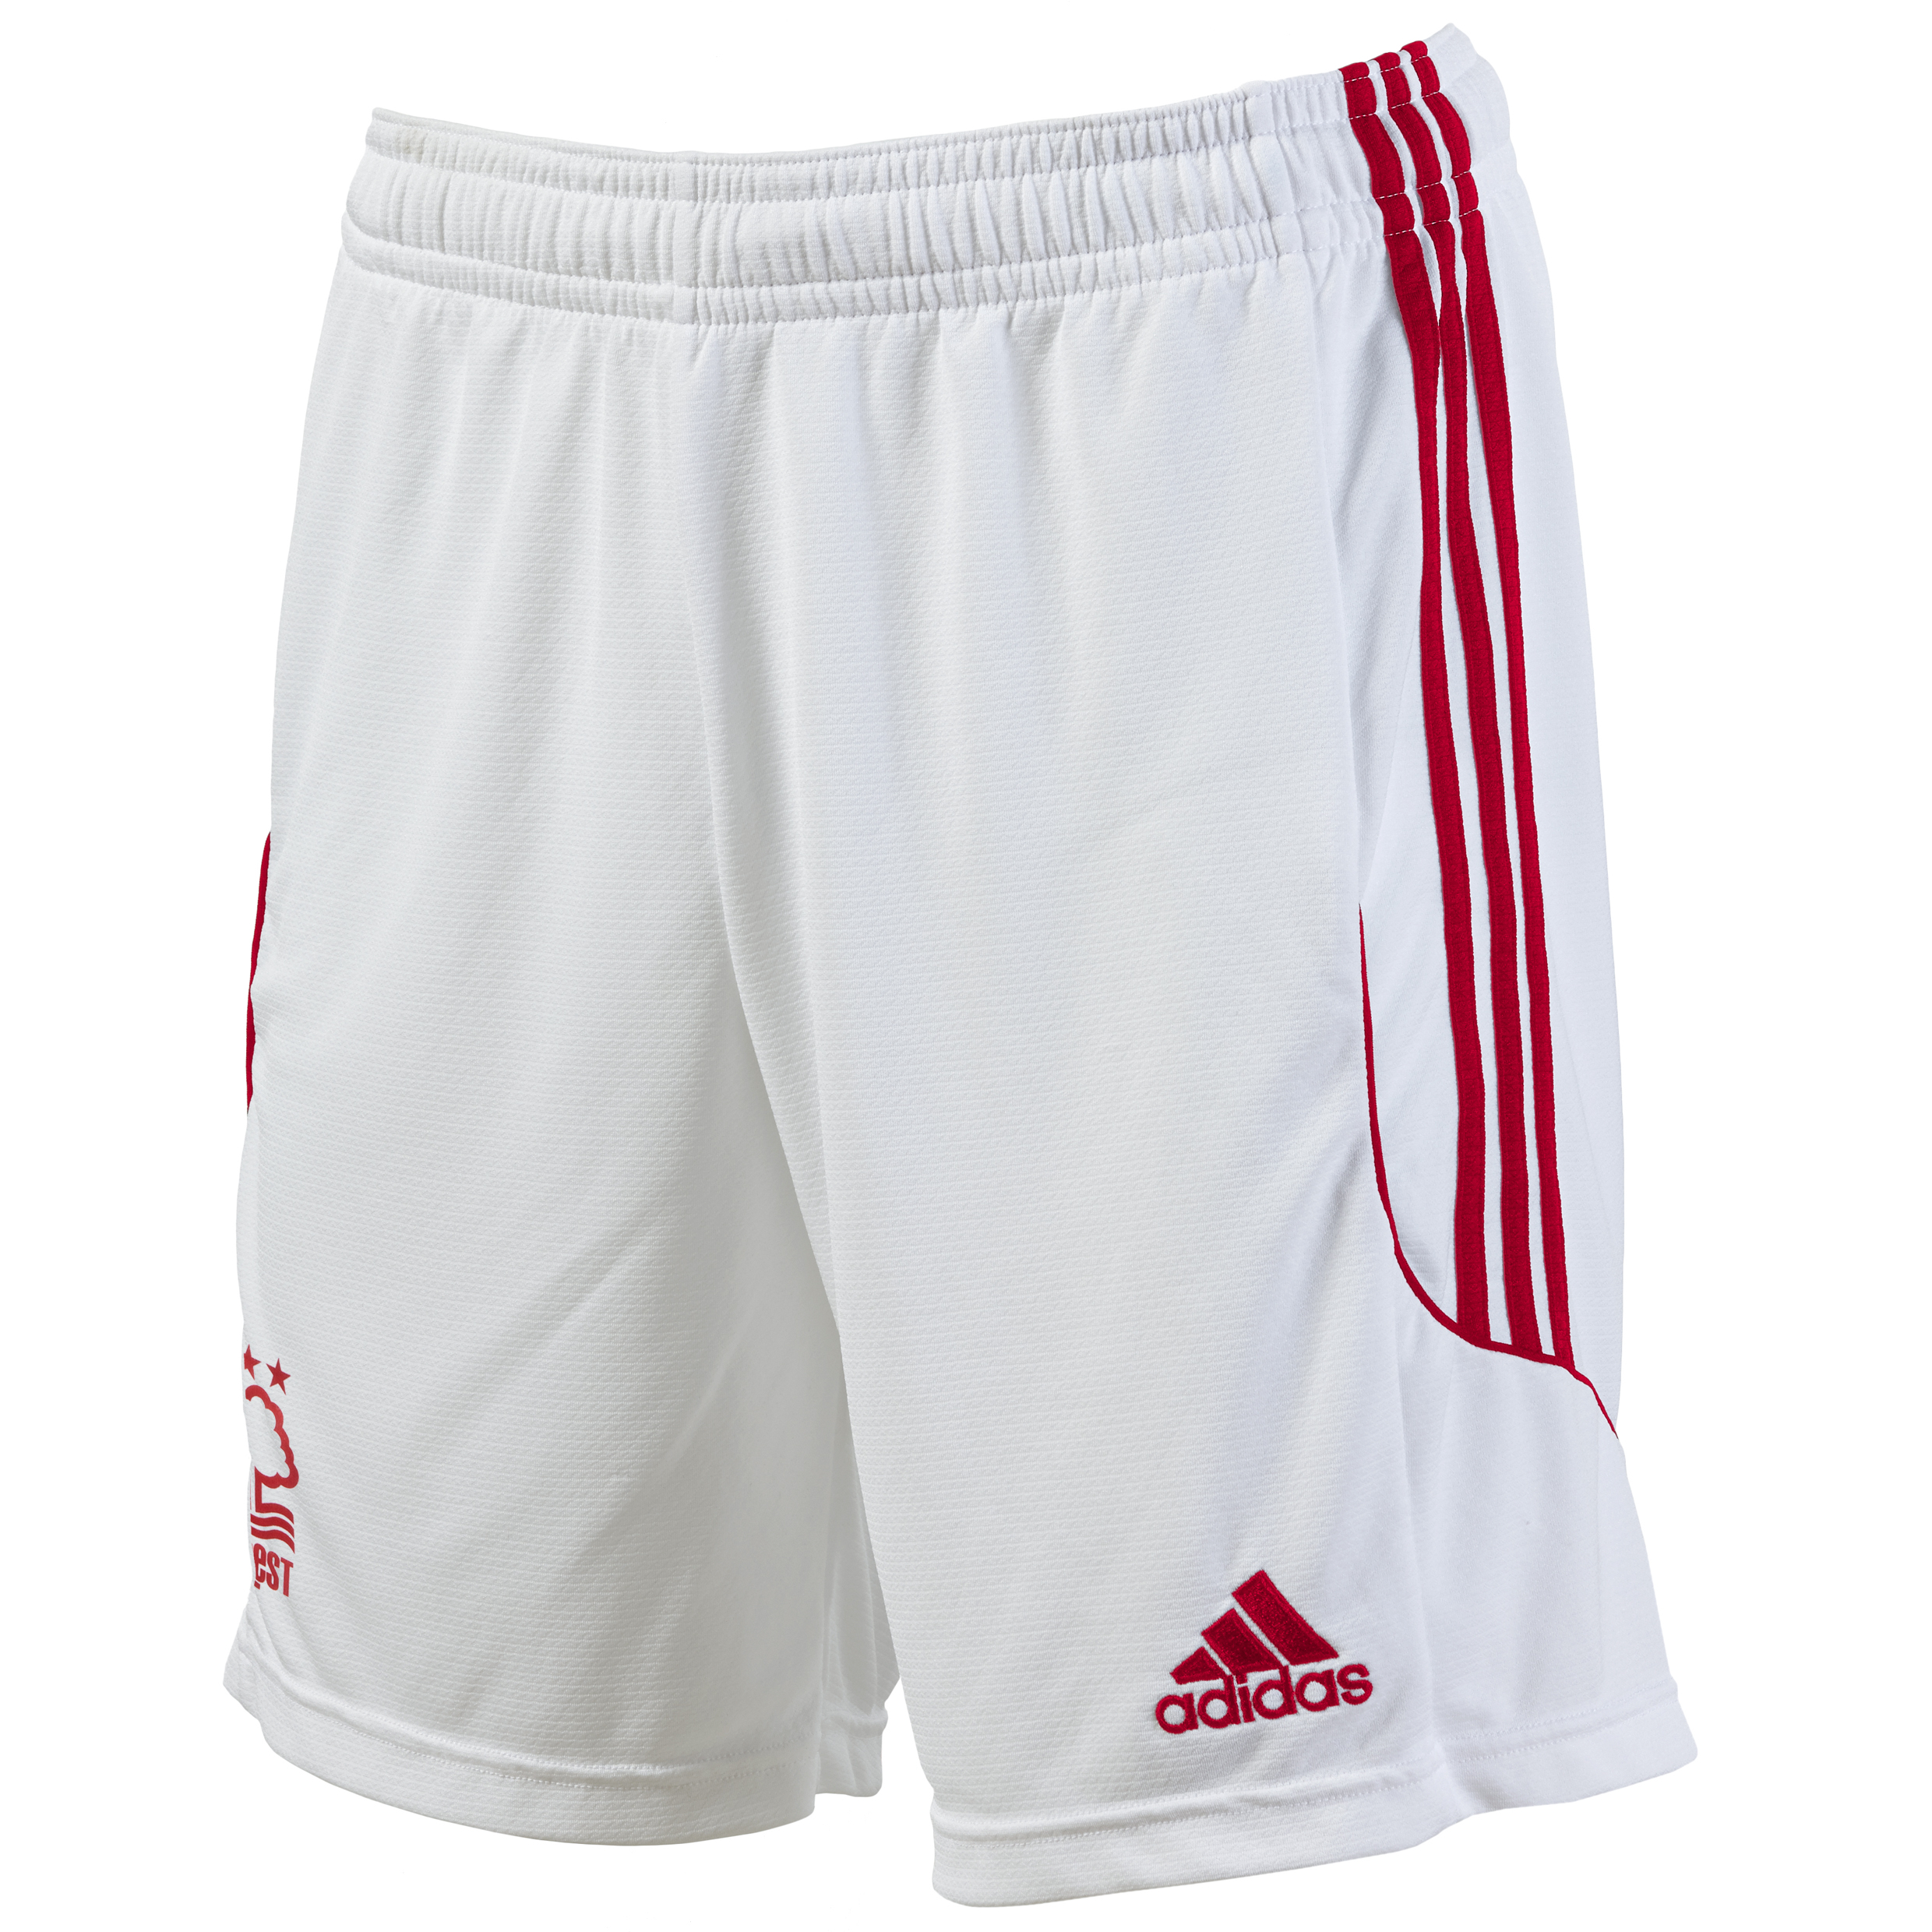 Nottingham Forest Home Short 2013/14